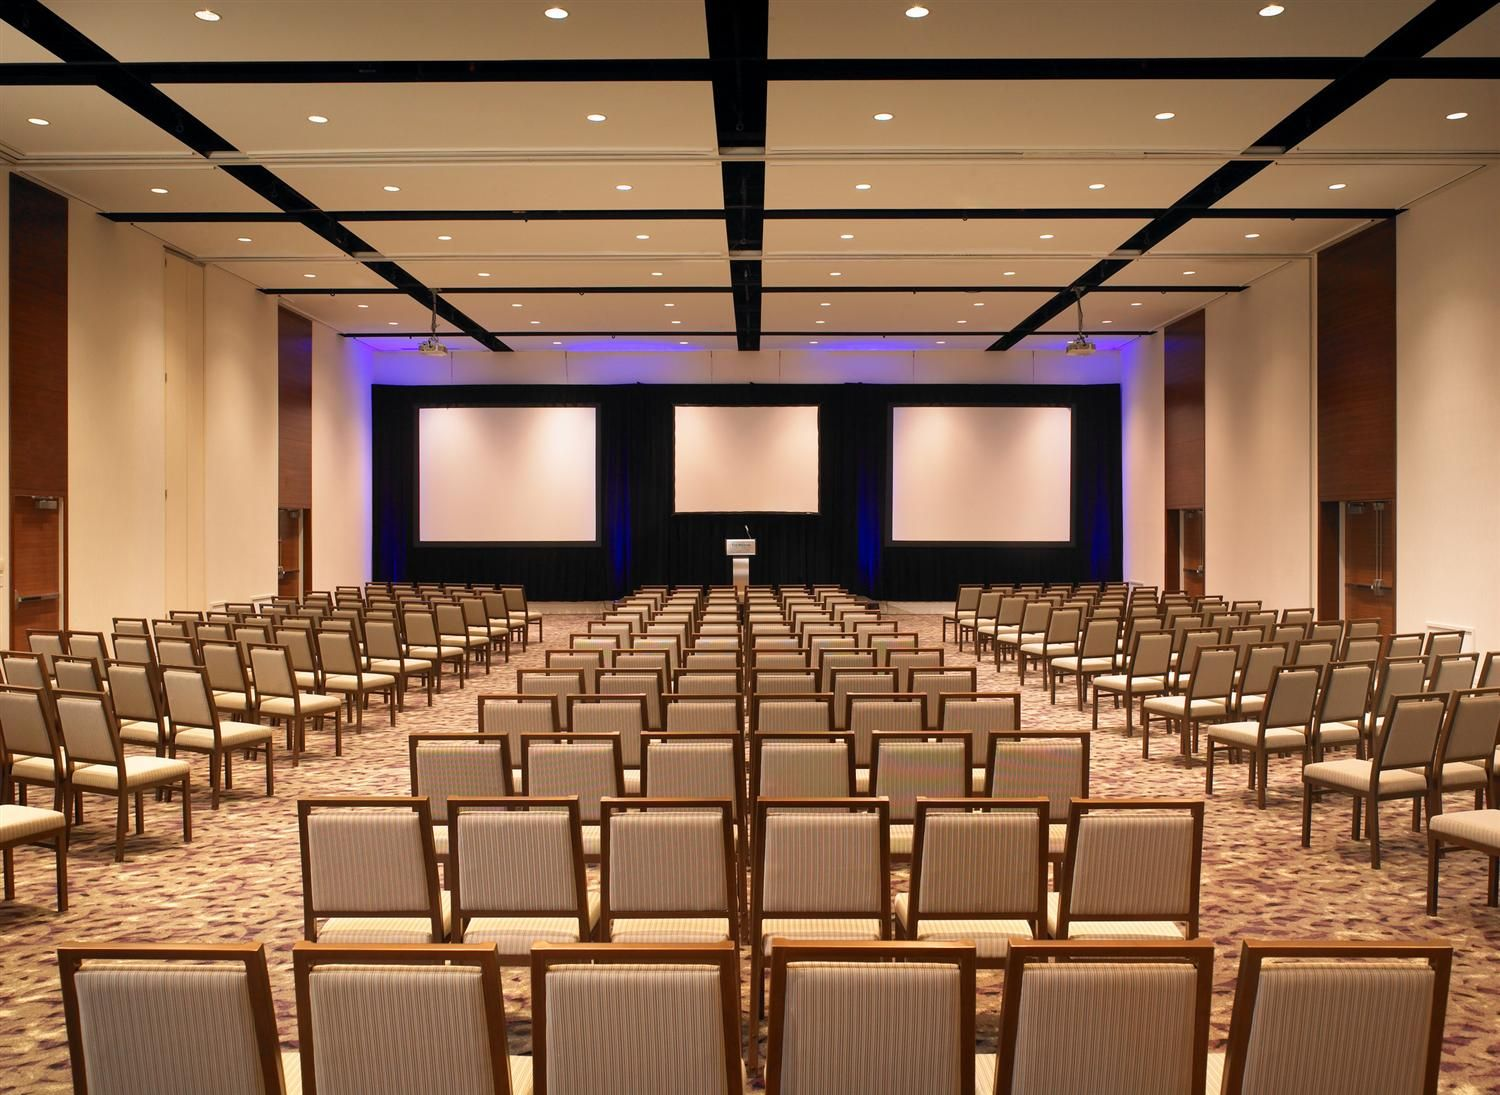 This Is Theater Style Room Setup Gereja Kantor